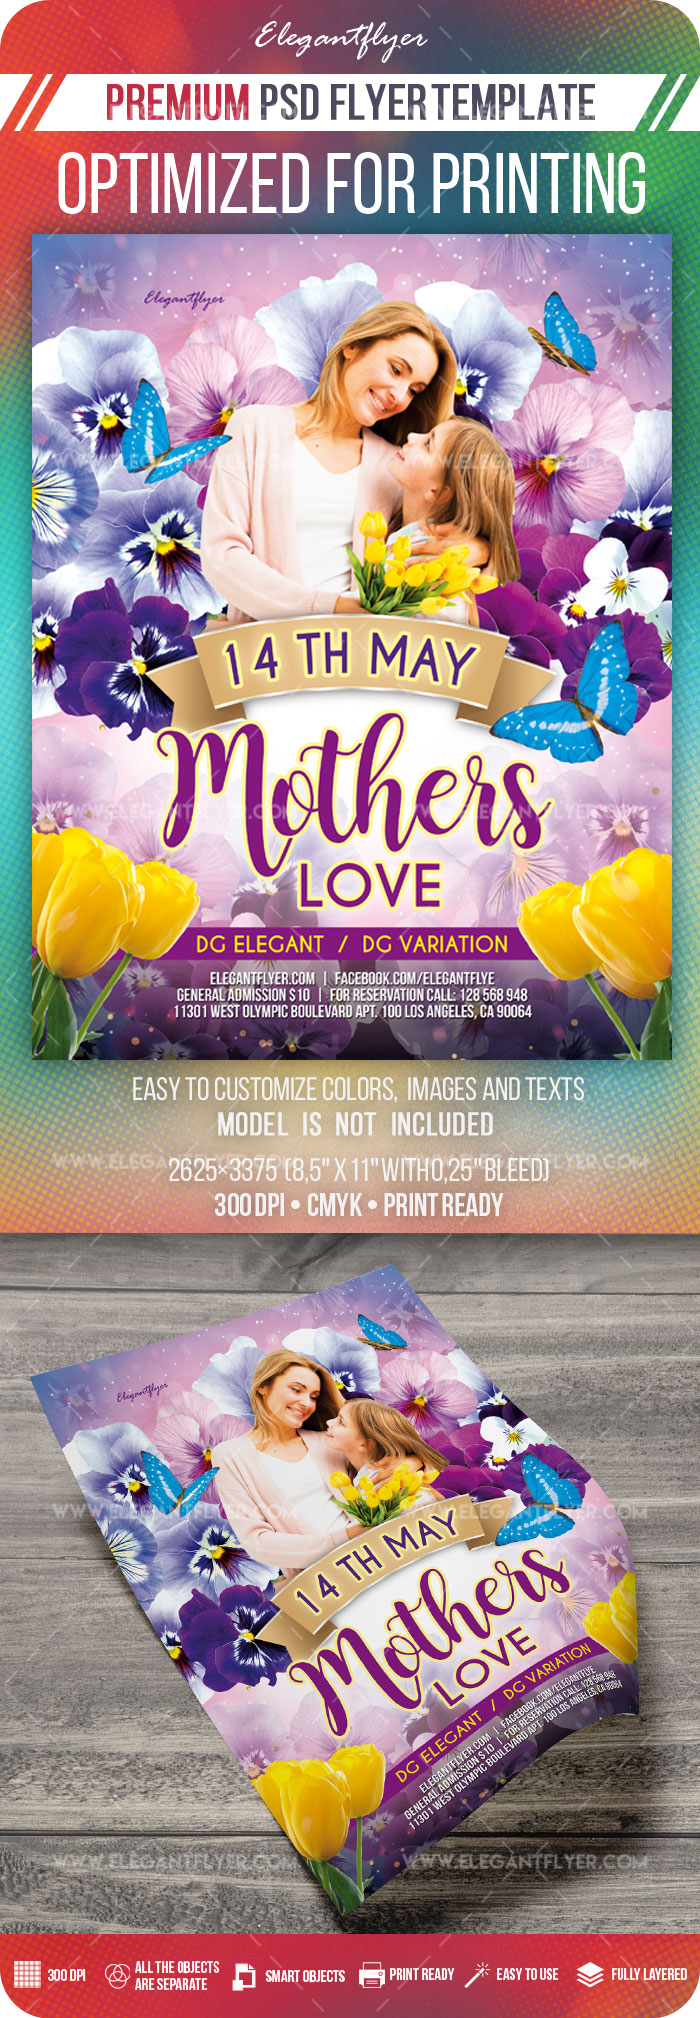 Mother's Love – PSD Flyer Template